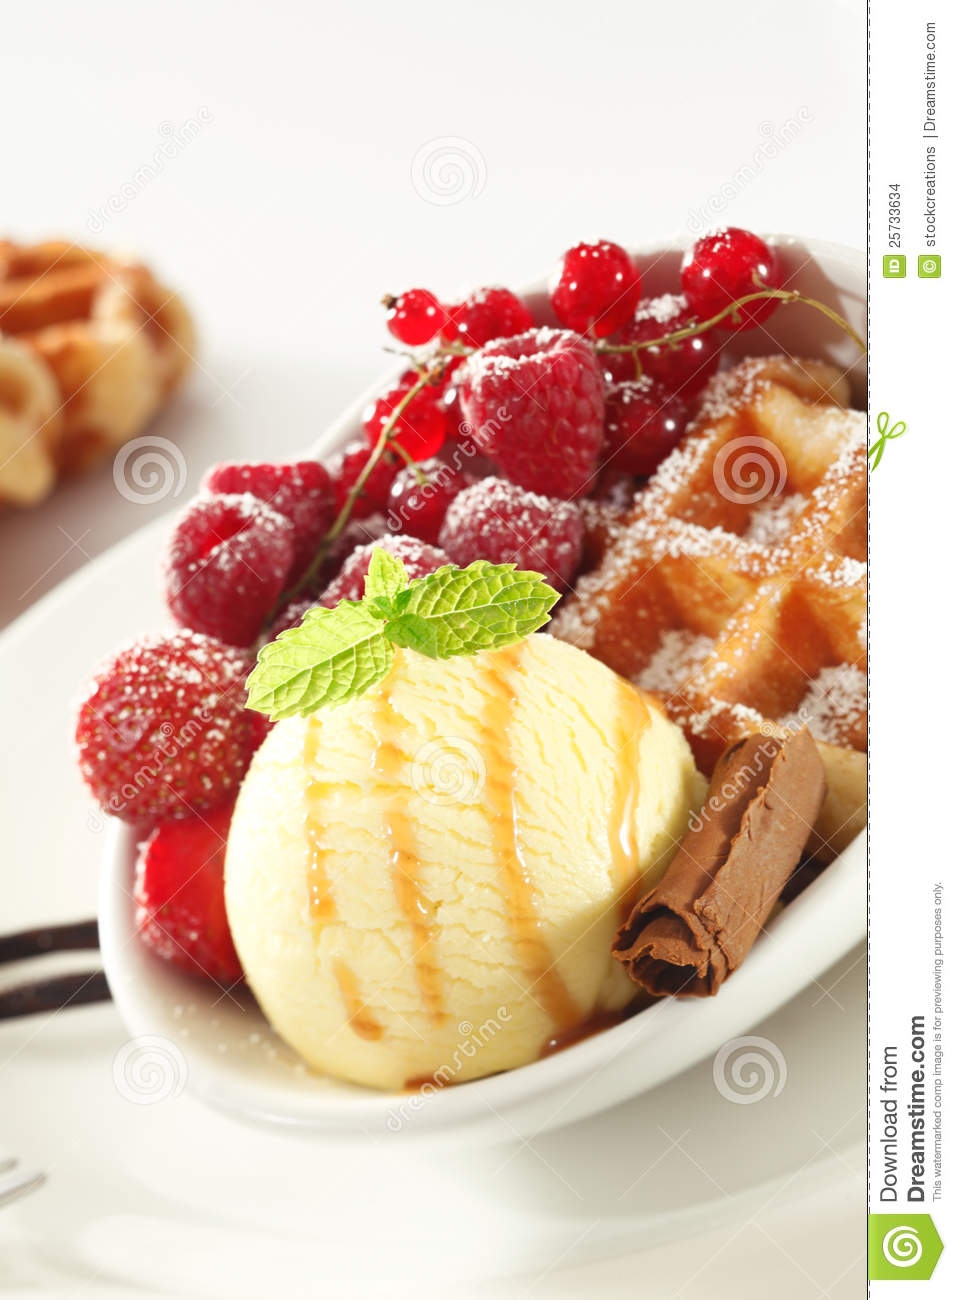 Waffle with fresh berries and ice-cream